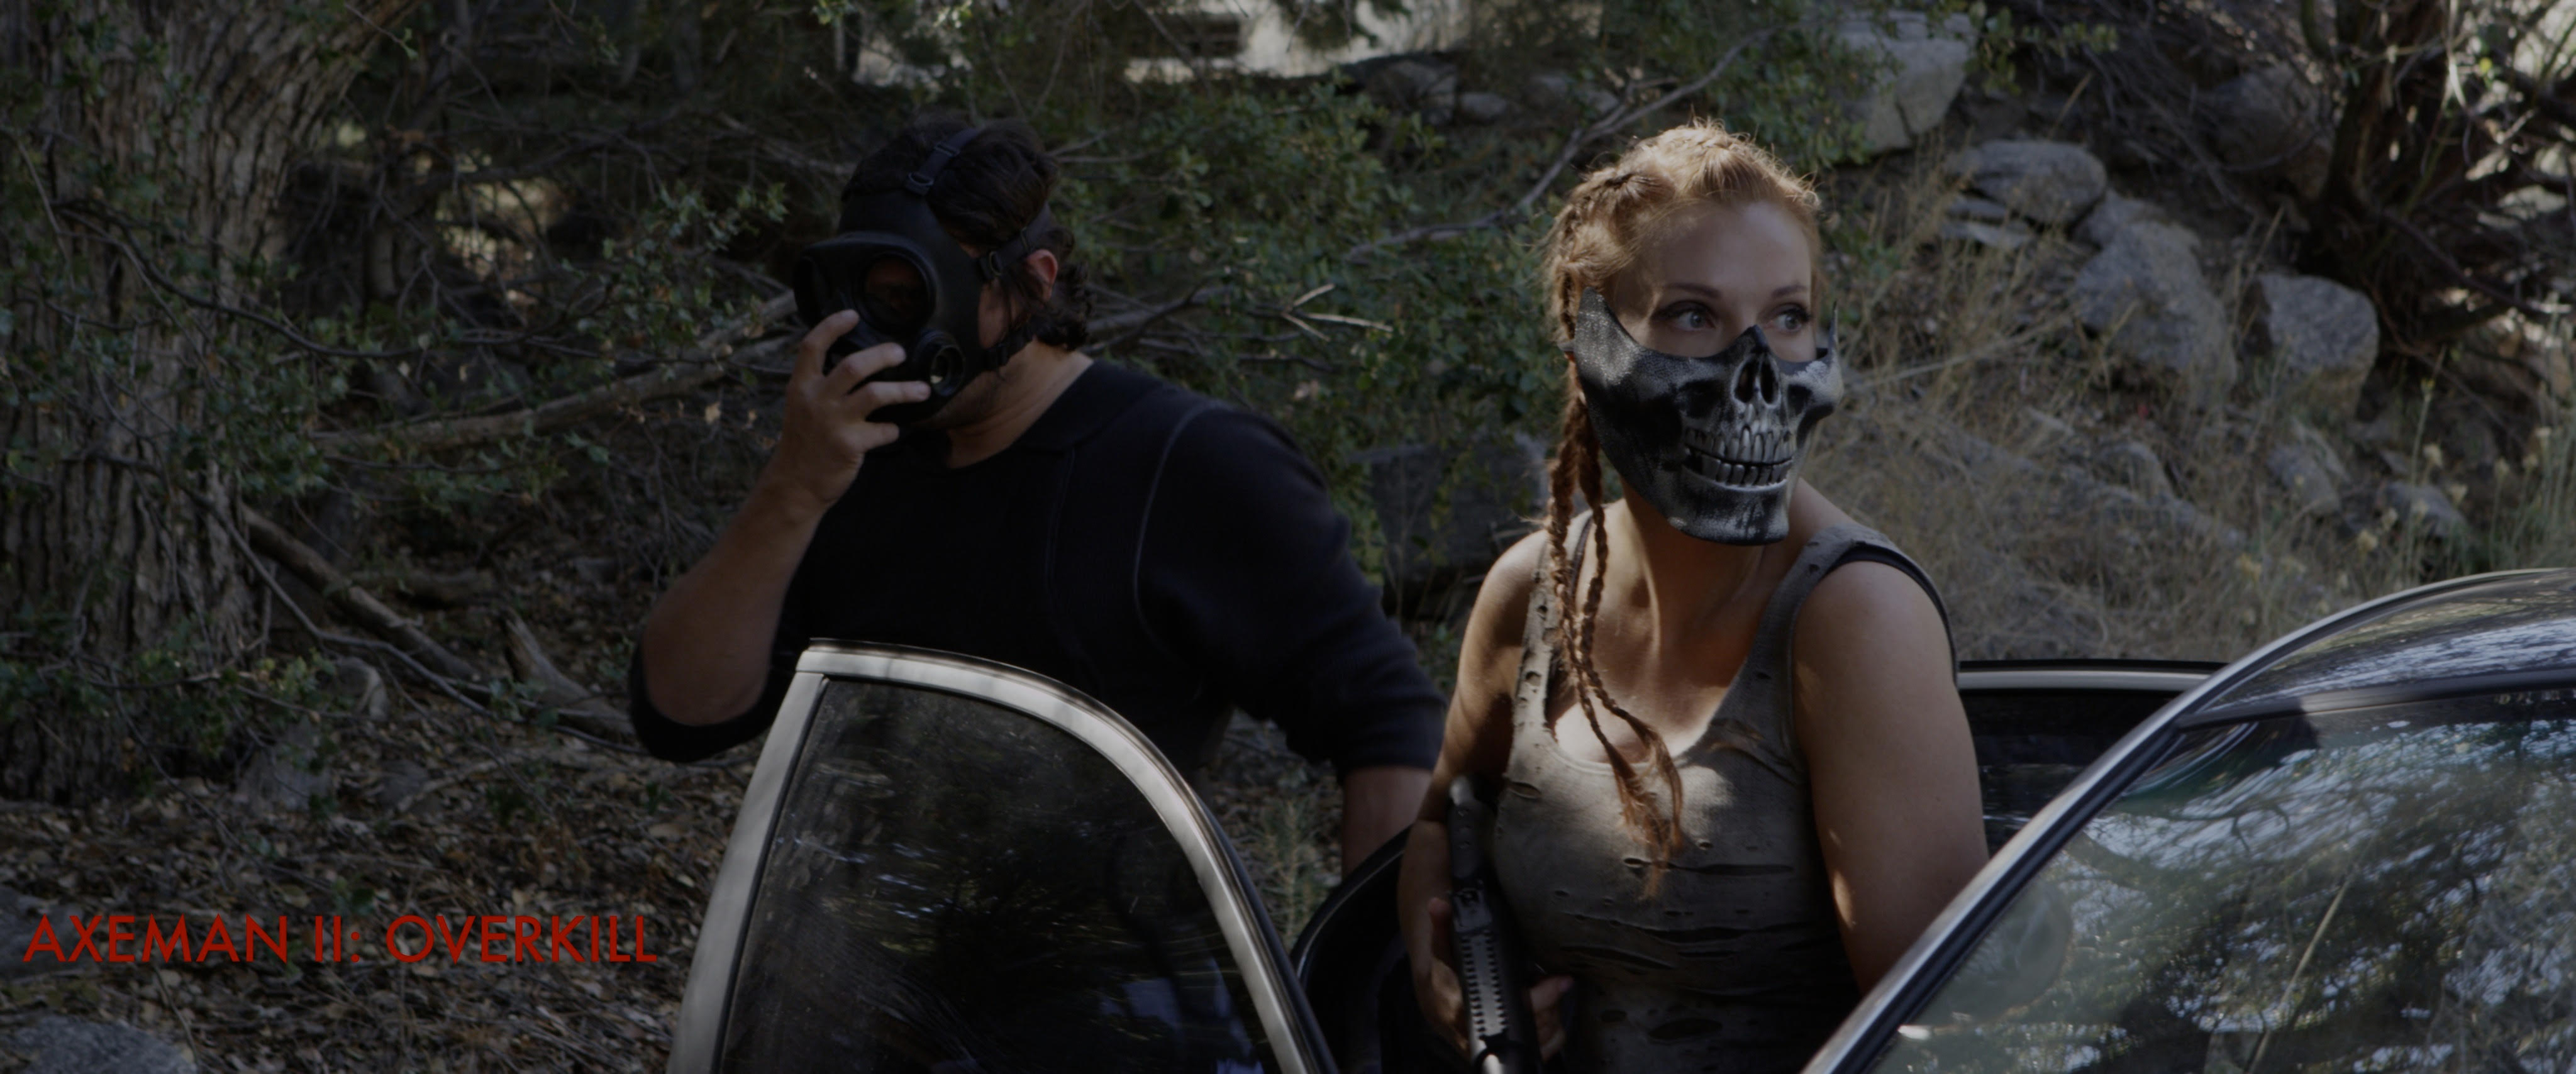 axeman 2 overkill - Axeman II: Overkill Trailer Delivers the Chop